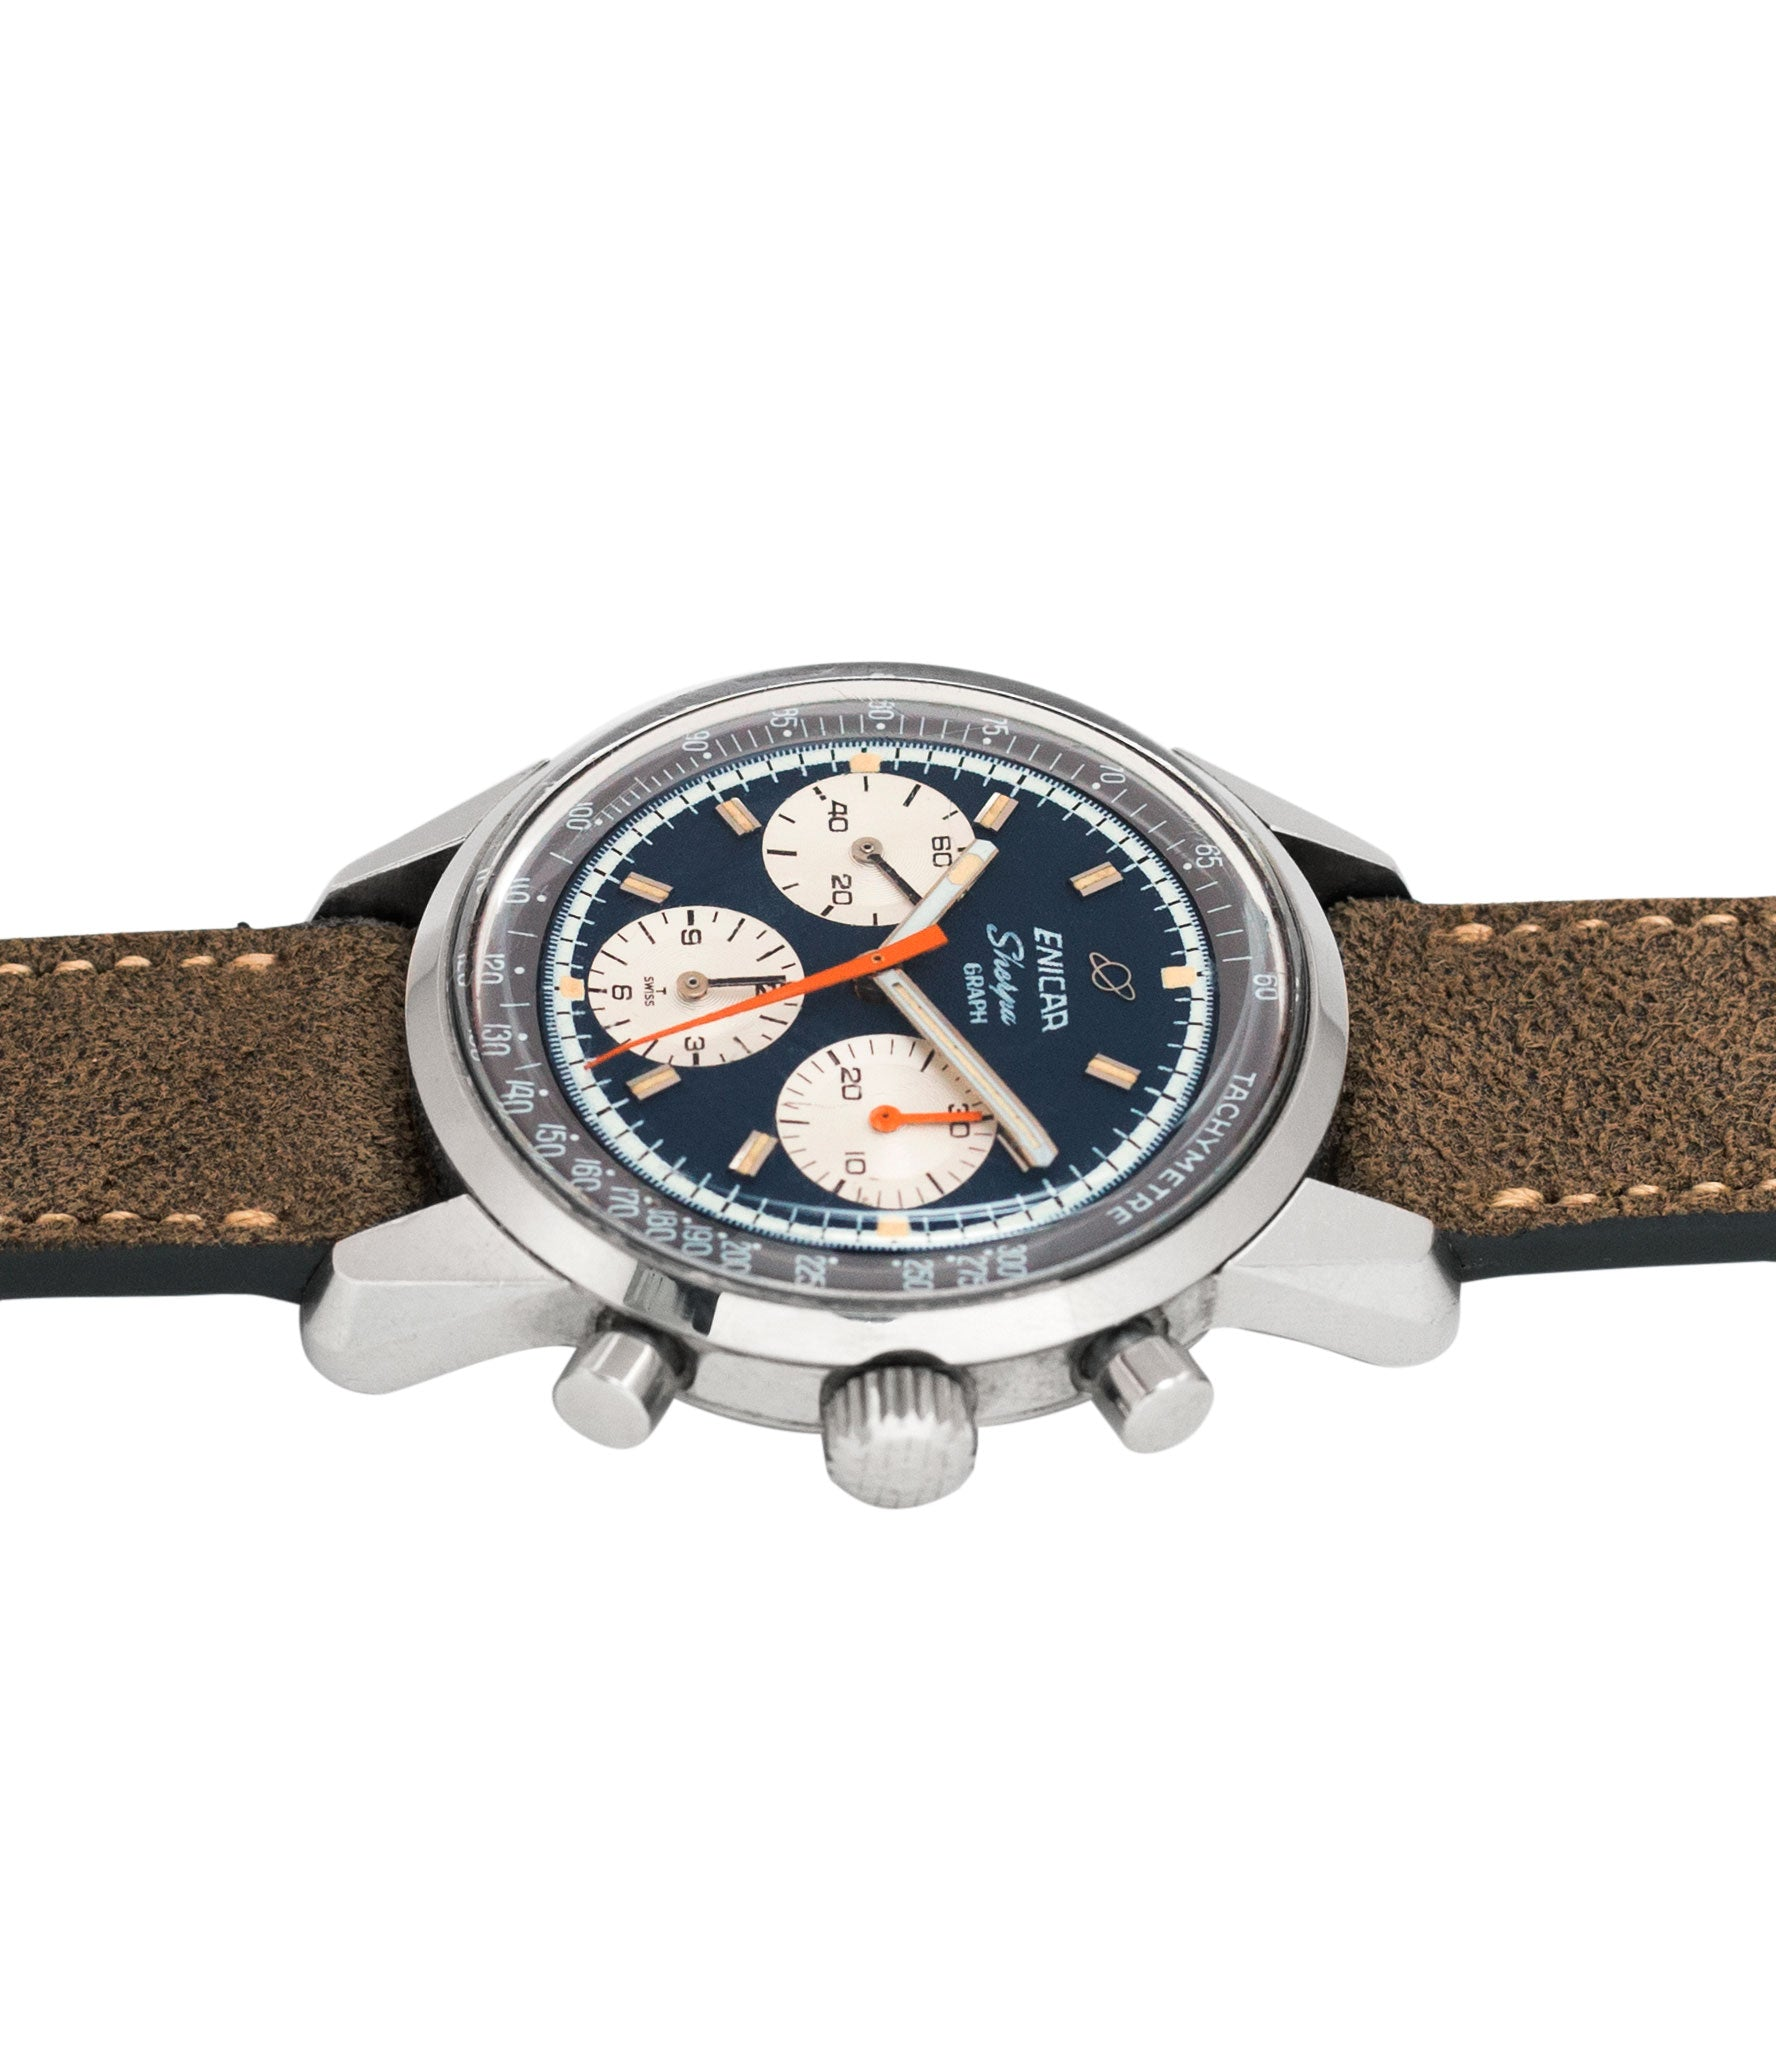 vintage Jim Clark Mark IV Enicar Sherpa Graph 300 Ref. 072-02-01 steel chronograph sport racing watch for sale online at A Collected Man London UK vintage watch specialist